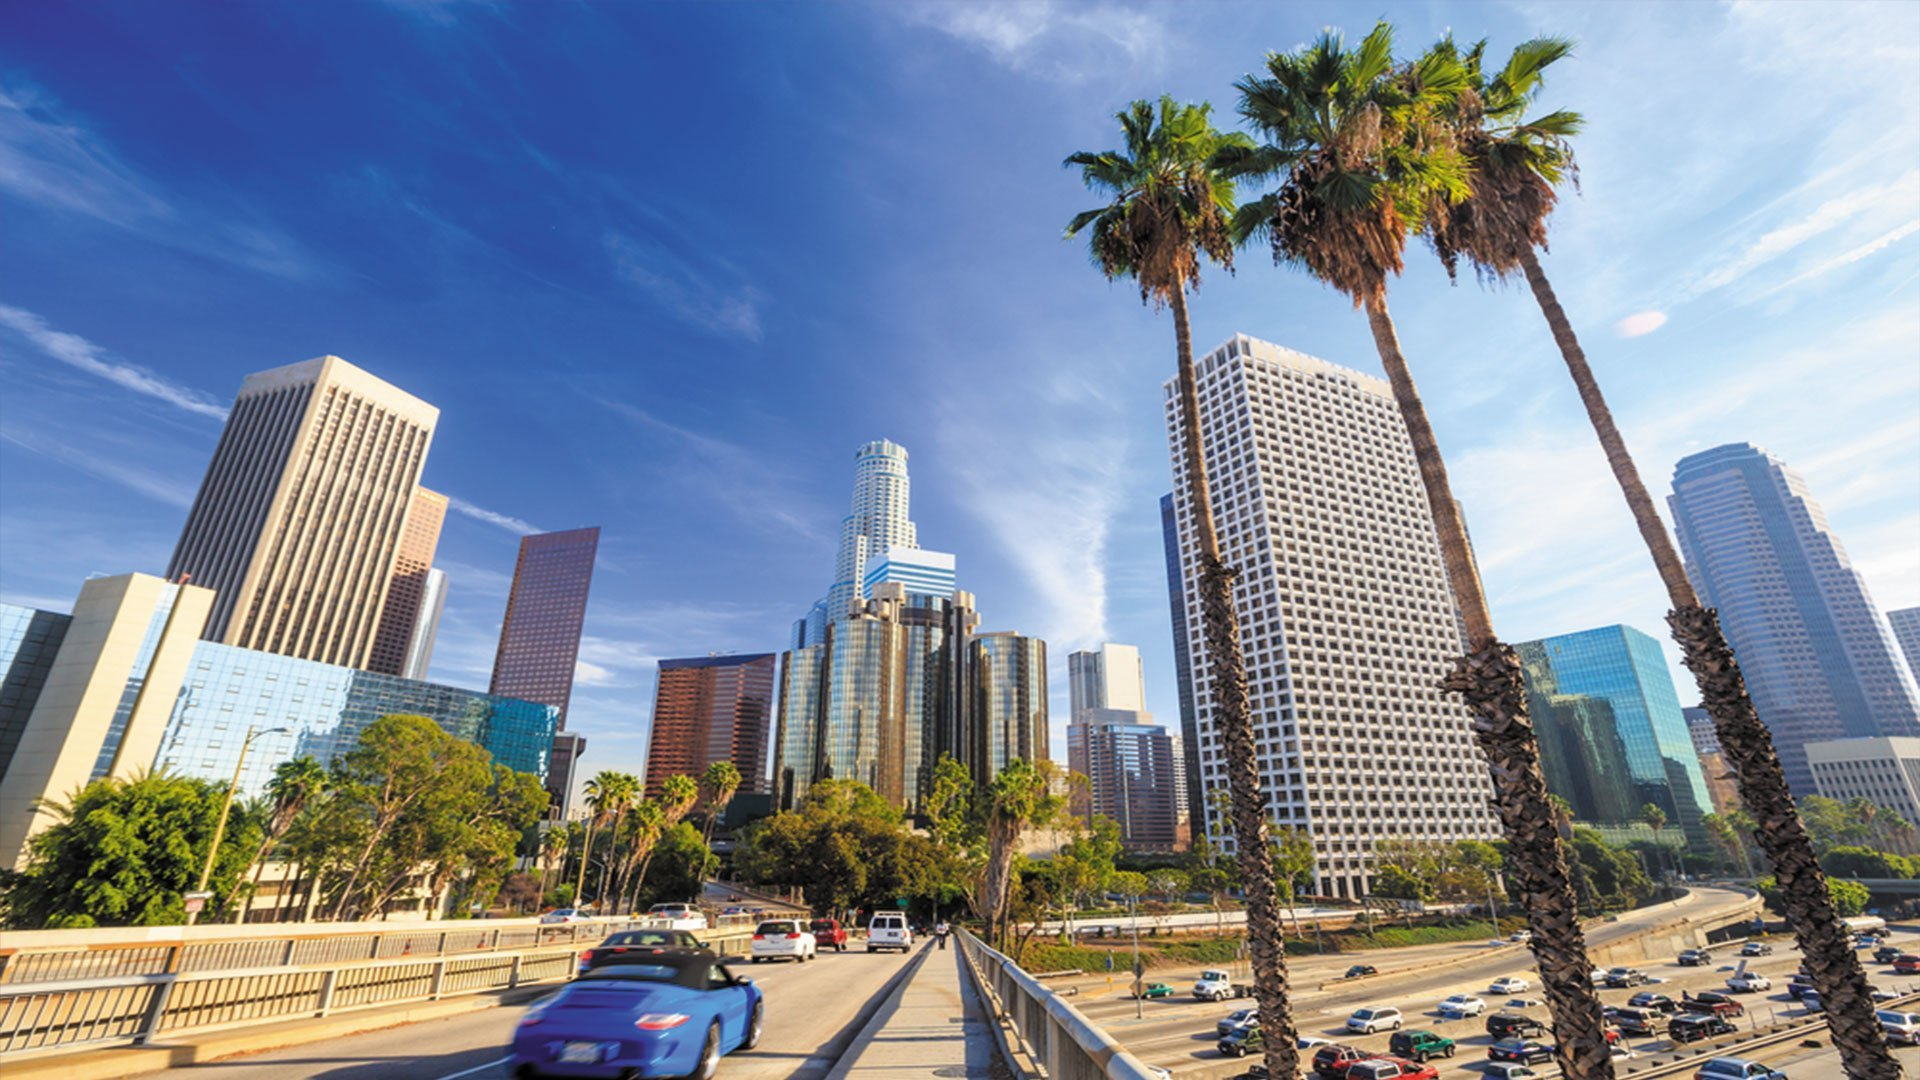 Vacation Travel Guide To Los Angeles Best Places Destinations To Visit In USA explore tourist attractions guide vacation tourism Zen Tripstar travel visit